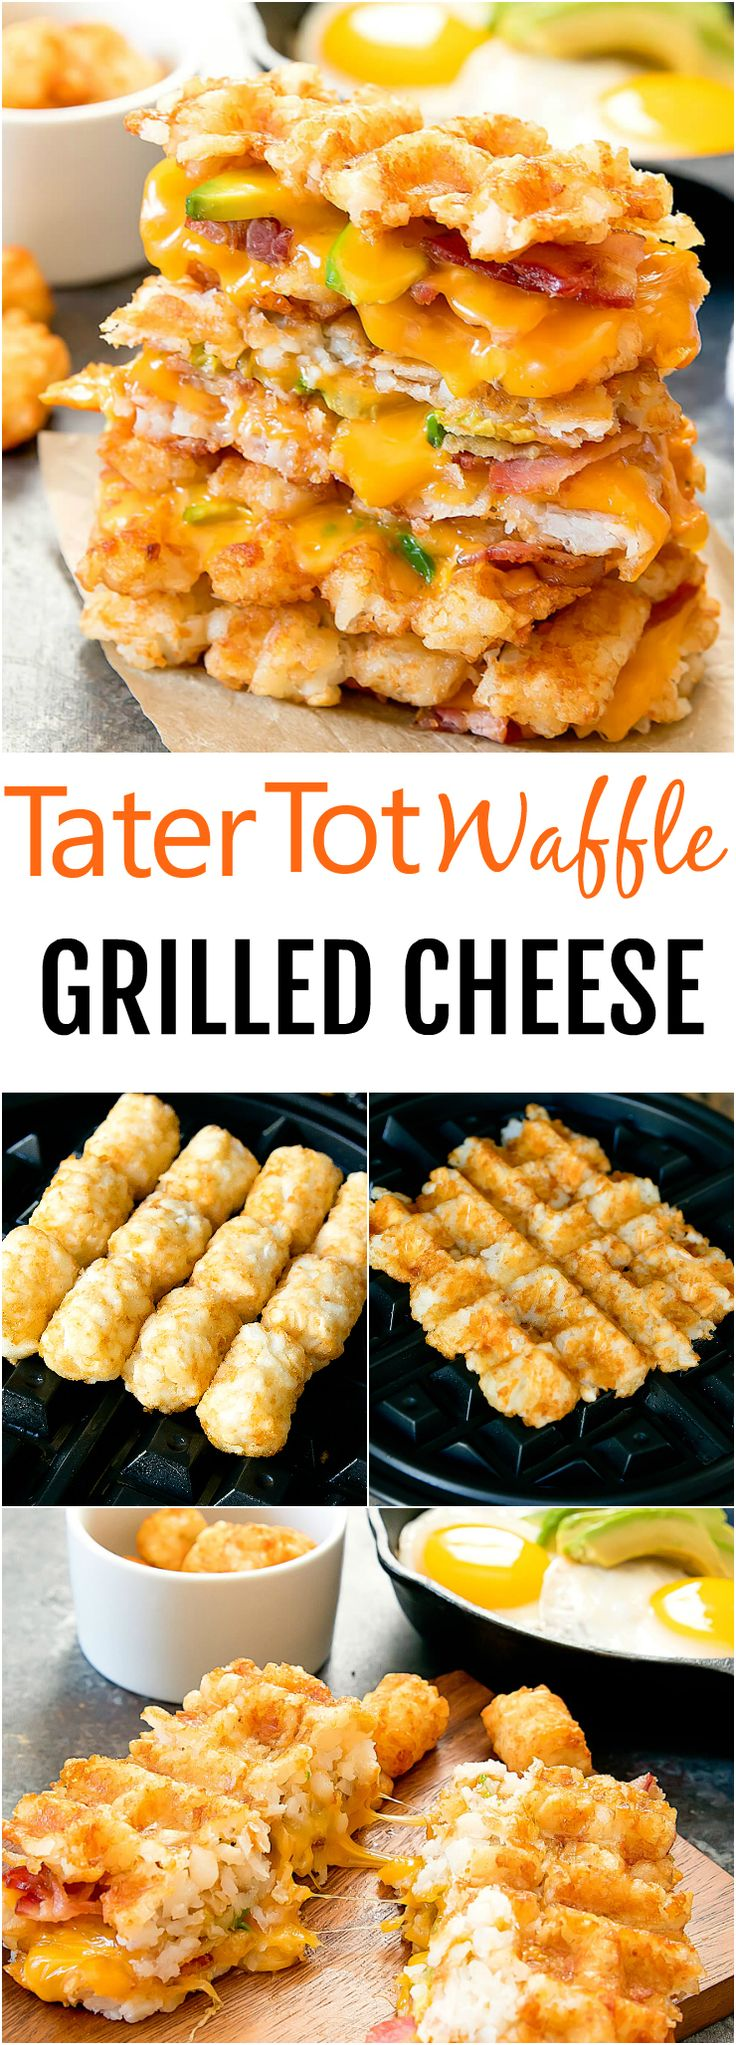 Tater Tot Waffle Grilled Cheese. A delicious breakfast grilled cheese sandwich using tater tot waffles as the bread!